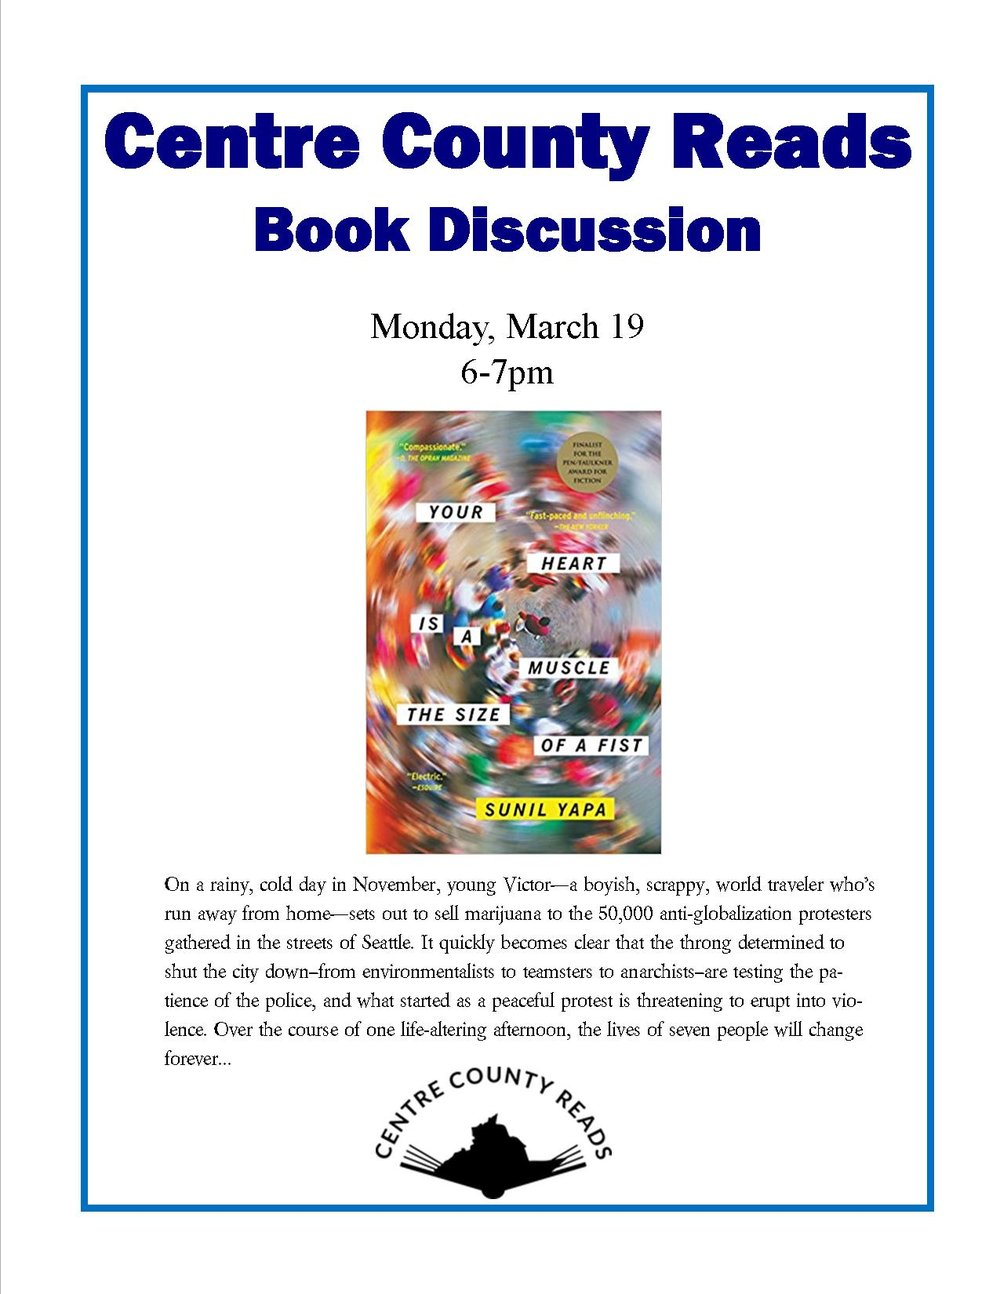 Centre County Reads Book Discussion for Holt.jpg